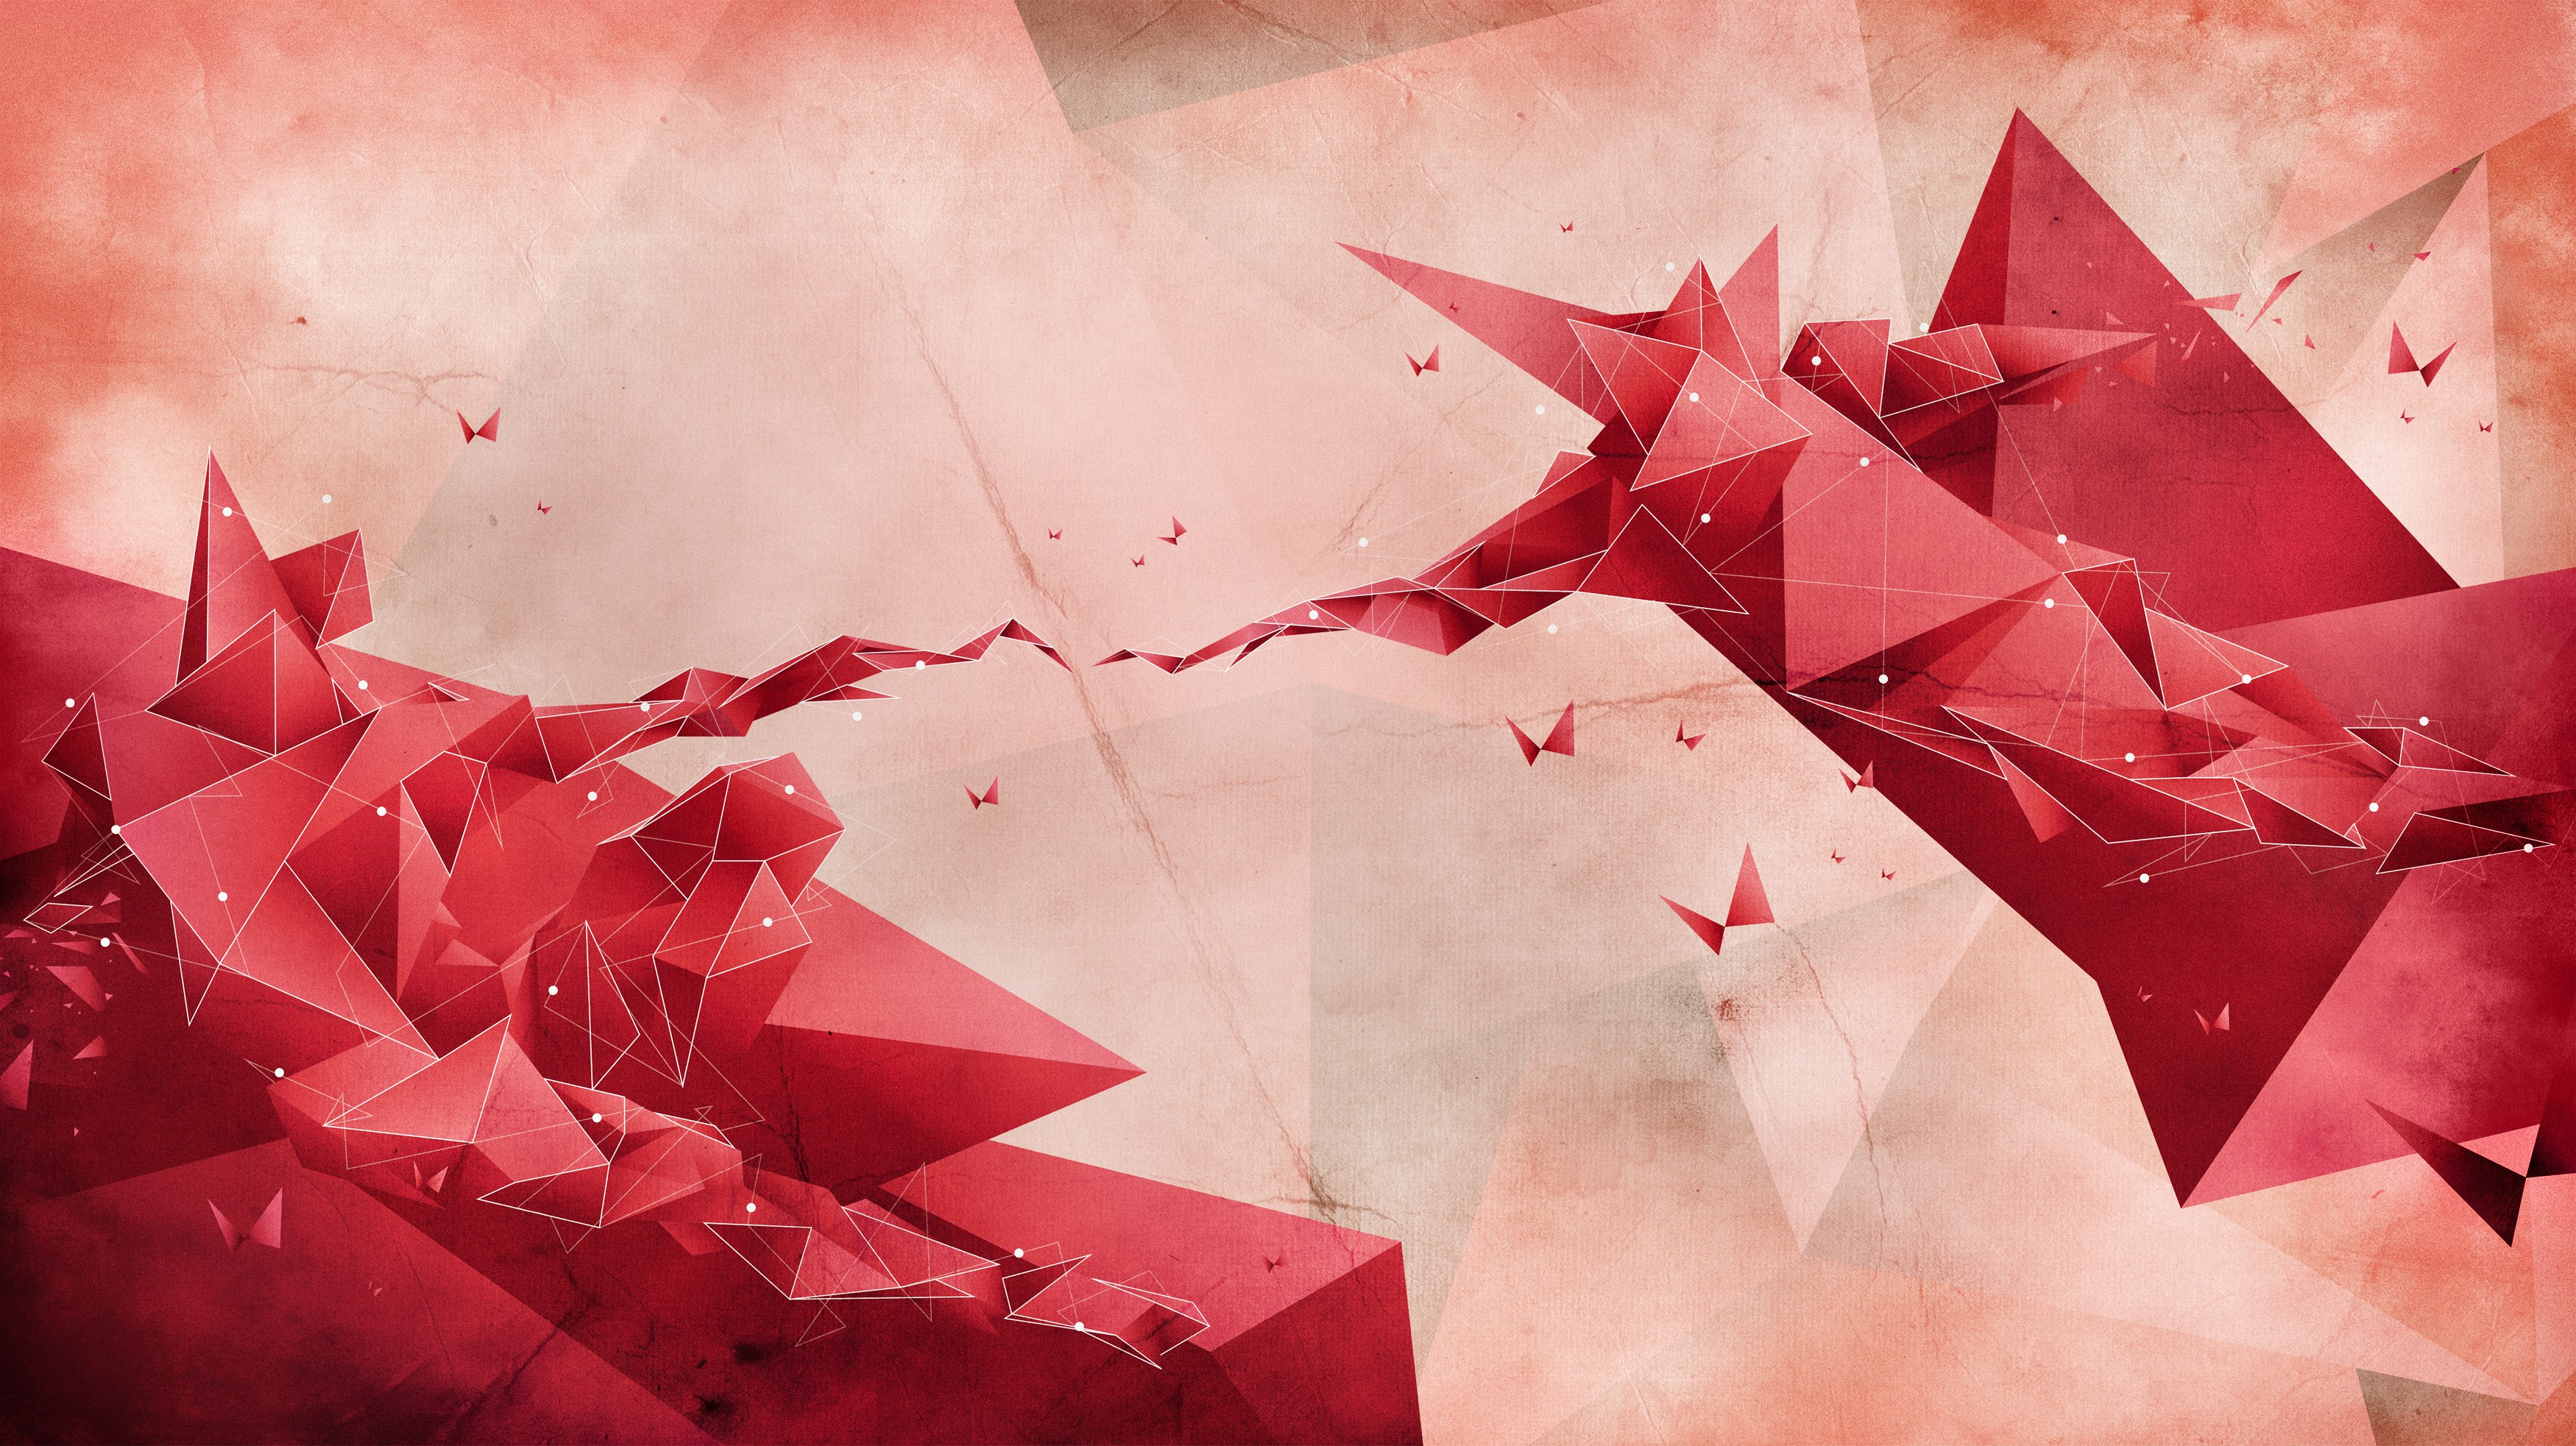 General 3500x1965 digital art The Creation of Adam low poly imagination lines geometry dots simple Michelangelo triangle artwork 3D